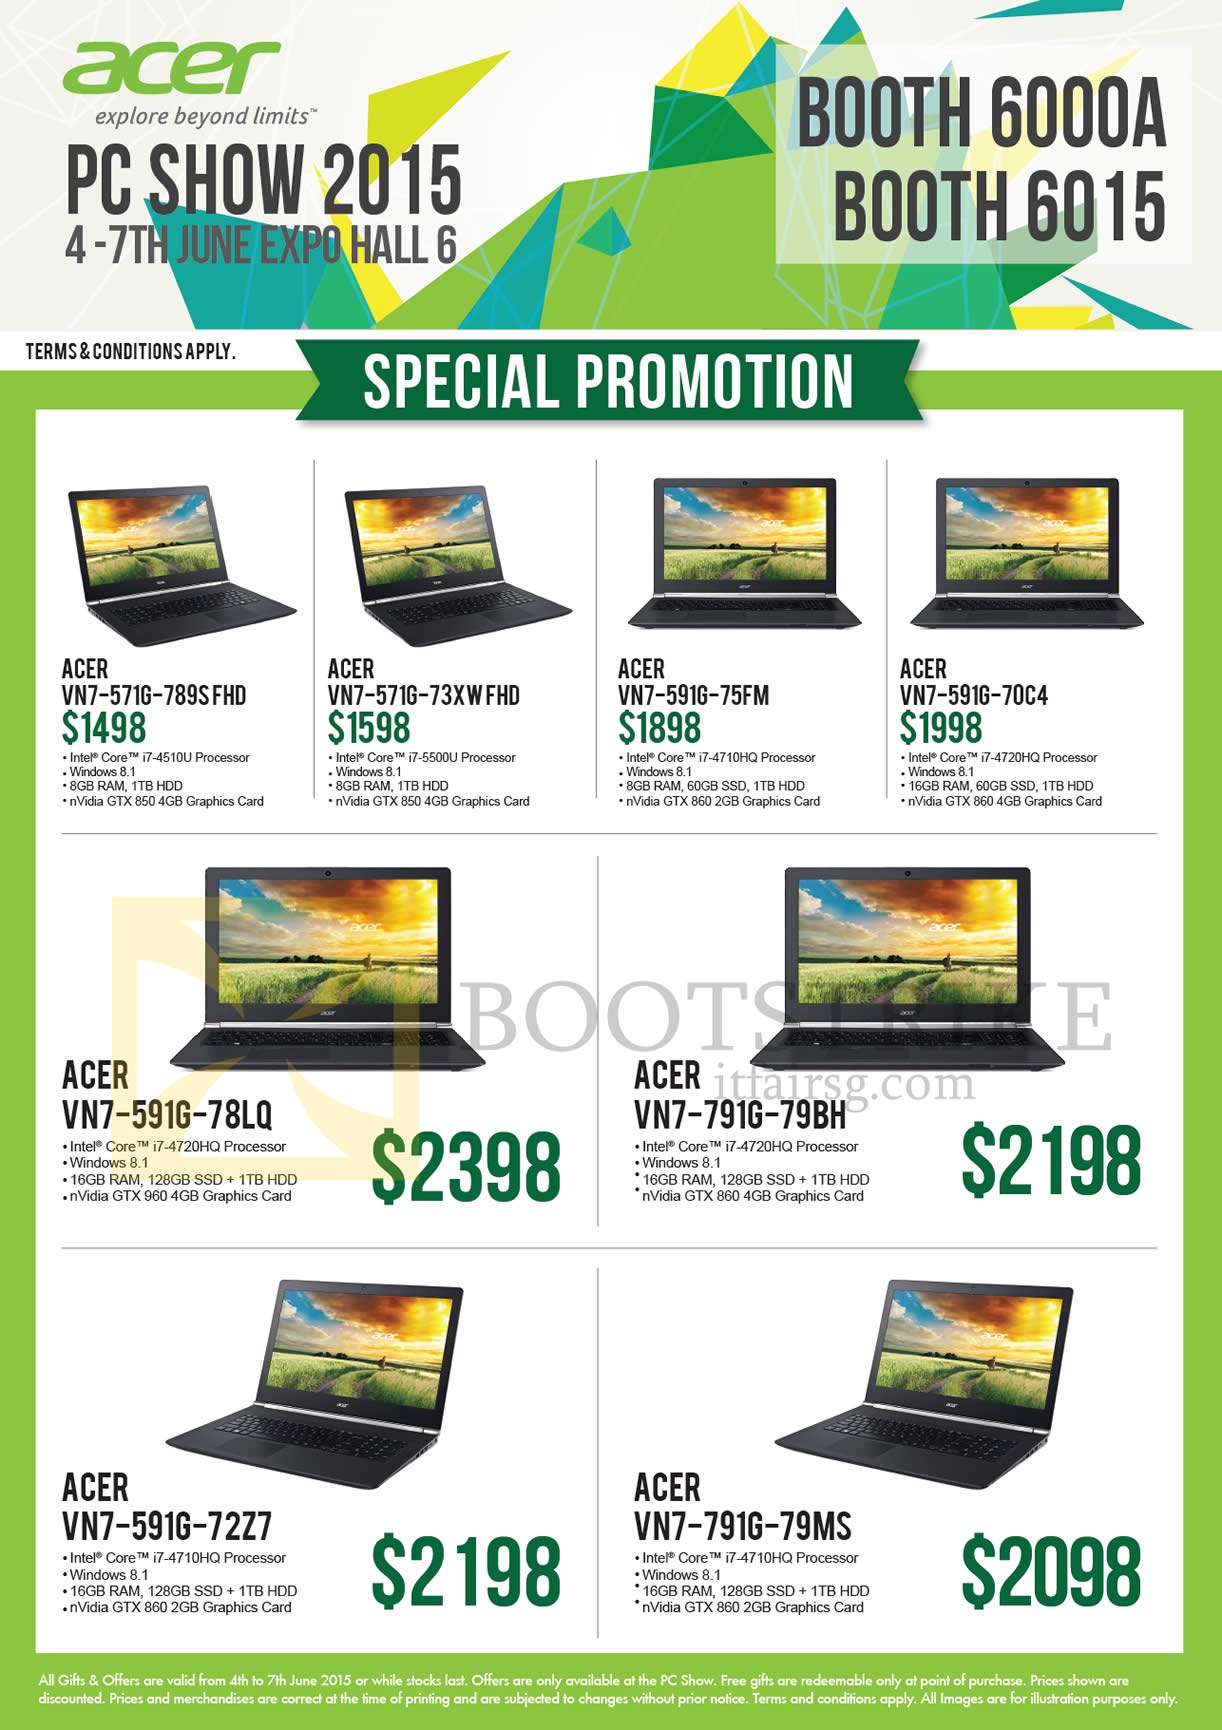 PC SHOW 2015 price list image brochure of Acer Newstead Notebooks VN7-571G-789SFHD, 73XWFHD, 591G-75FM, 70C4, 78LQ, 72Z7, 791G-79BH, 79MS